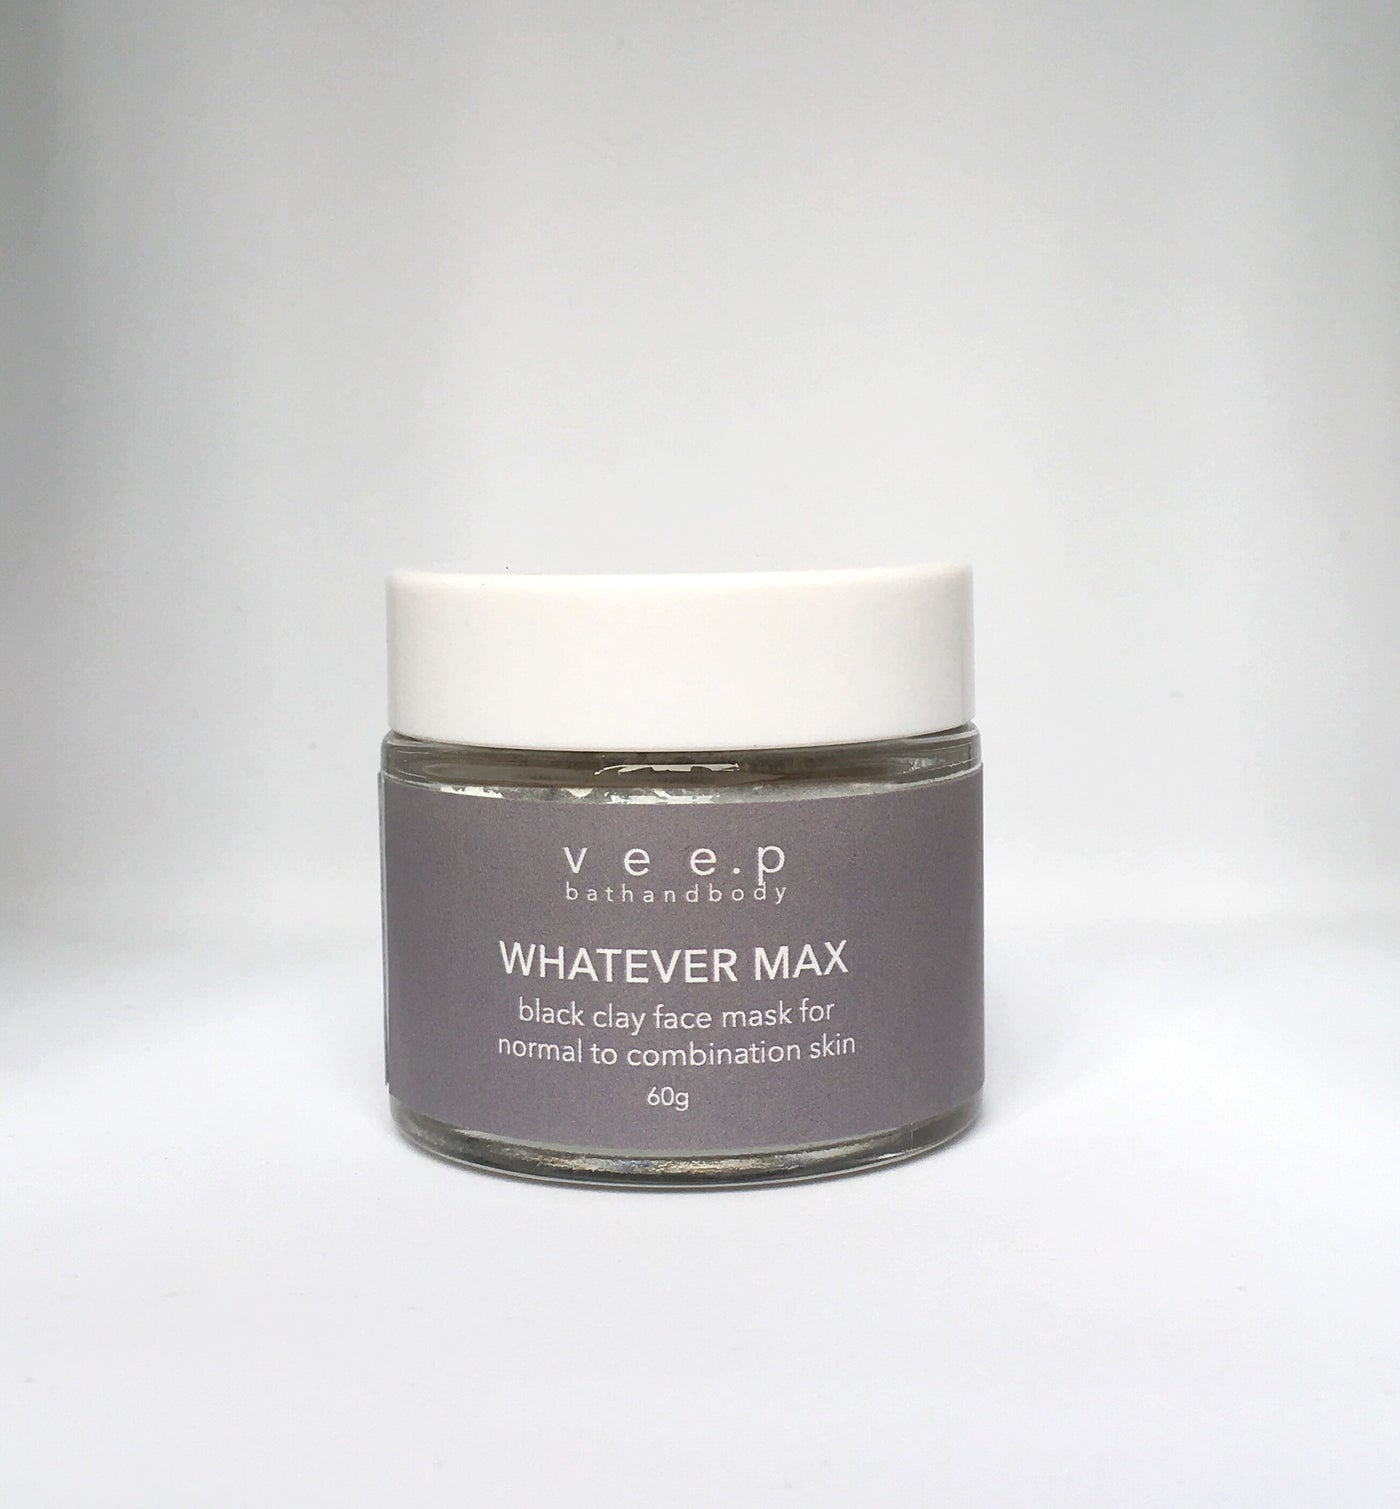 WHATEVER MAX CLEANSING & CONDITIONING BLACK CLAY FACE MASK 60g